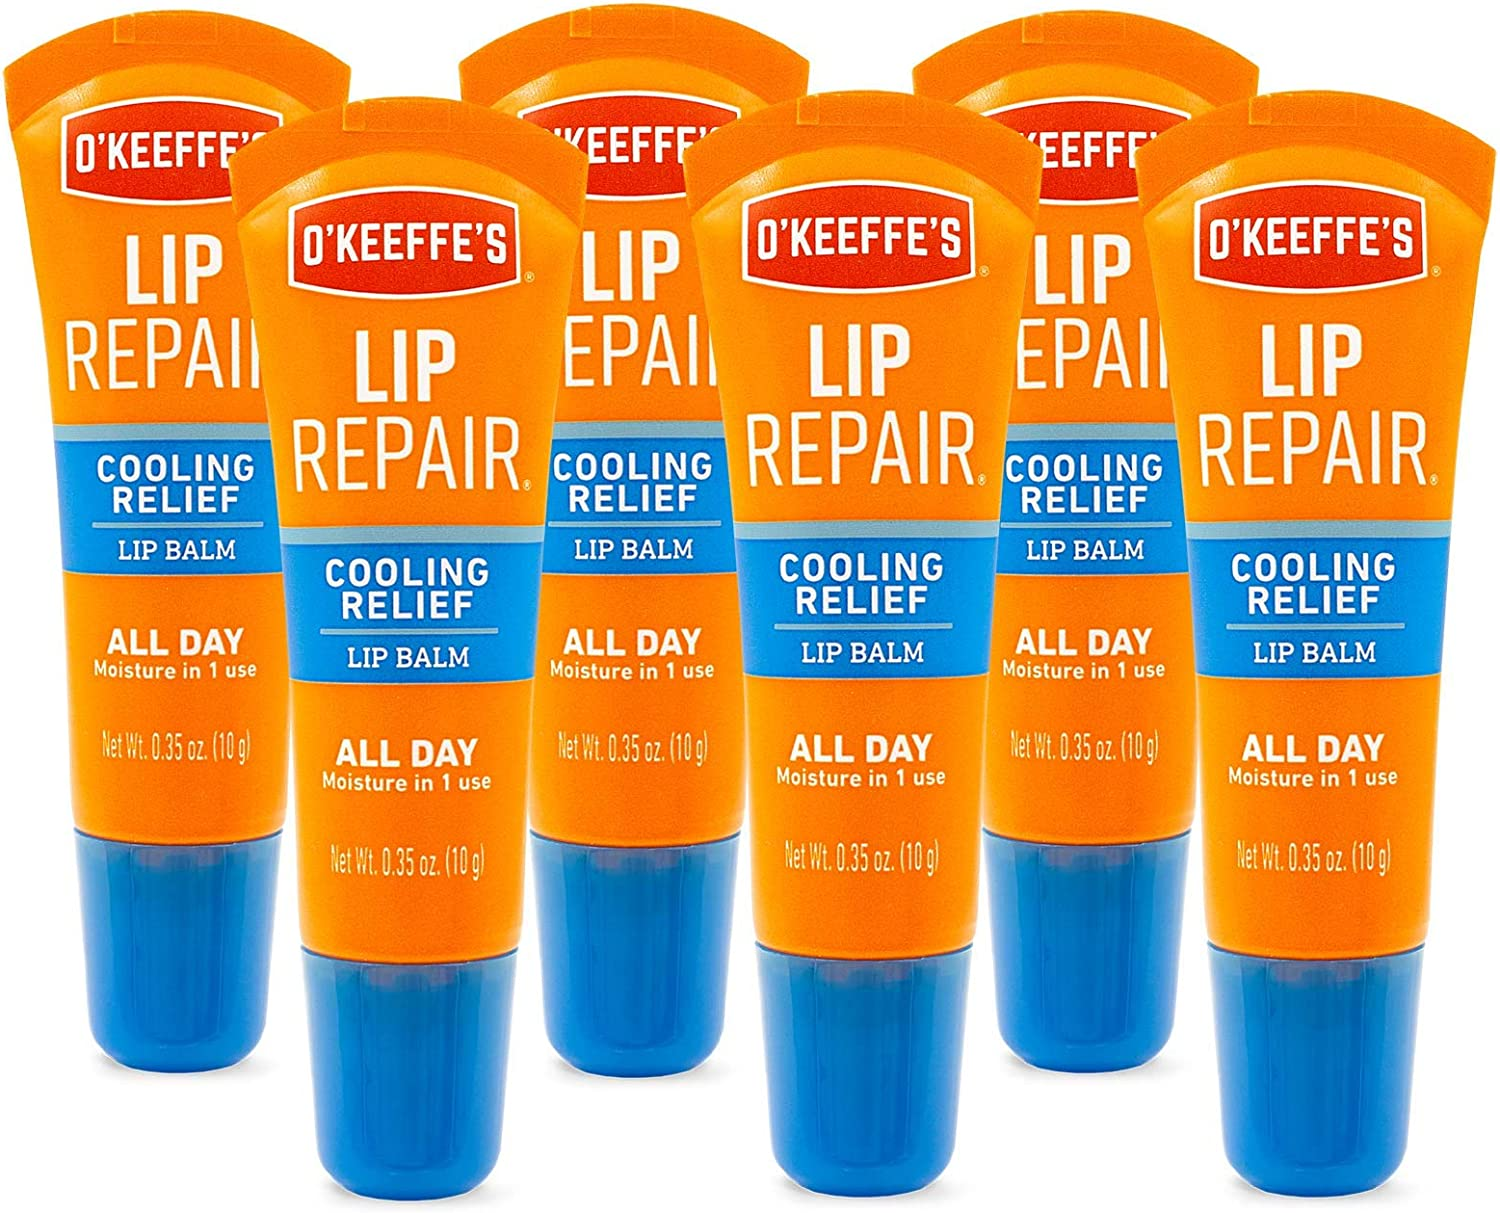 O'Keeffe's Cooling Relief Lip Repair Lip Balm.35 Ounce Tube, (Pack of 6)